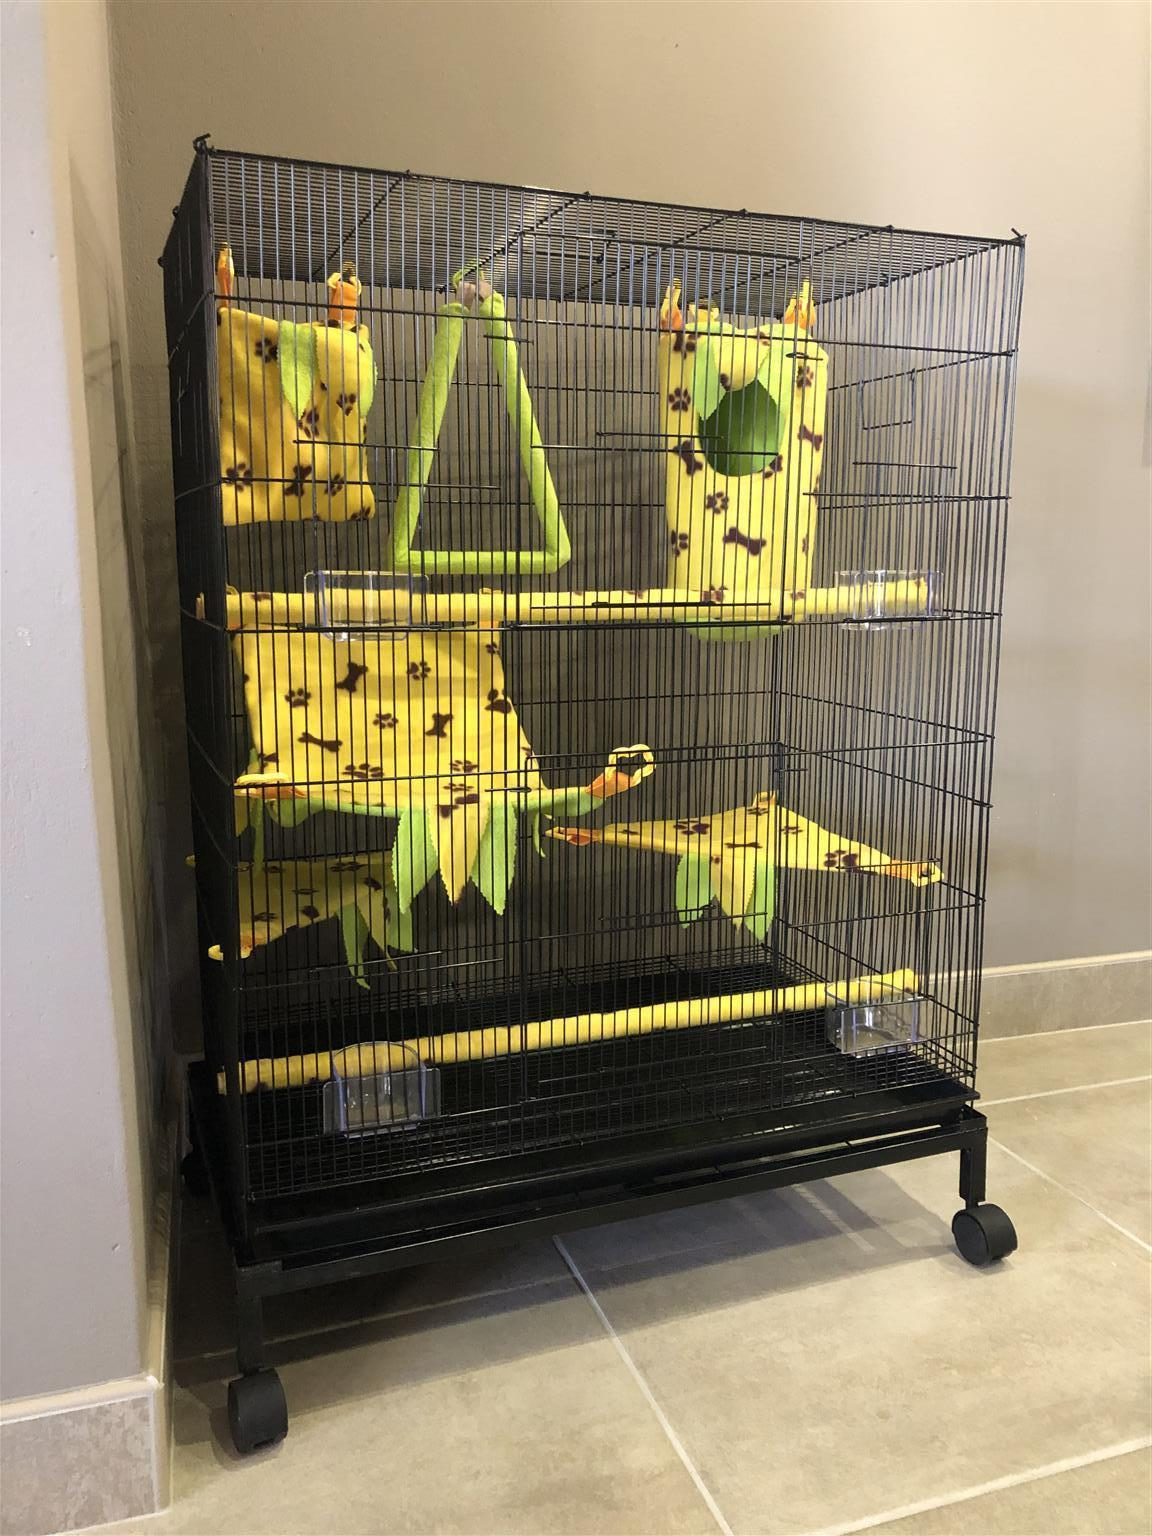 New cage with accessories